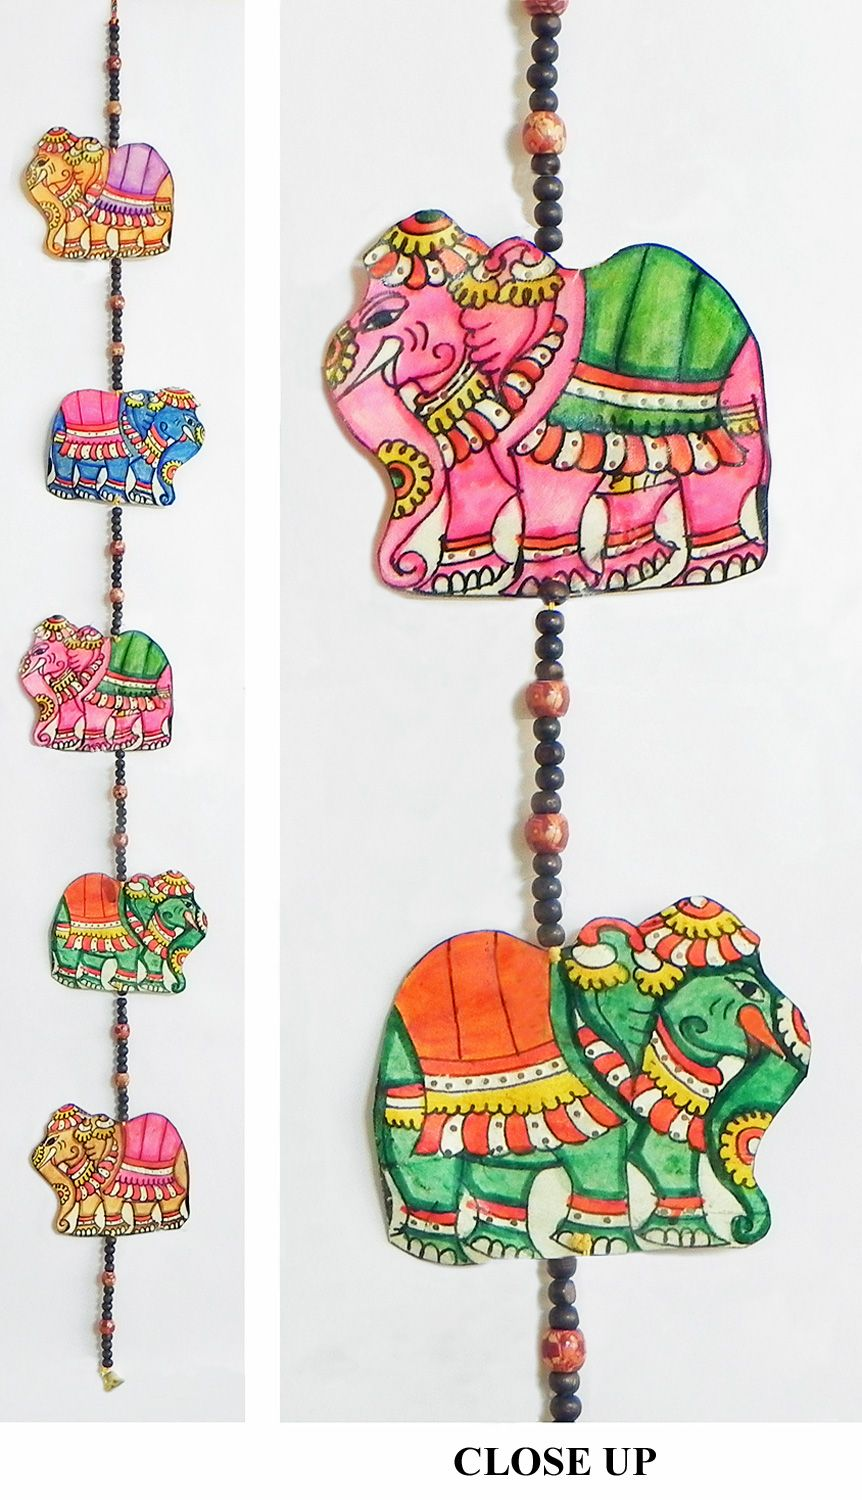 Hand Painted Hanging Elephants with Beads  Perforated Leather Crafts from Andhra Pradesh is part of Hand Painted Hanging Birds With Beads Perforated Leather - Hand Painted Hanging Elephants with Beads  Perforated Leather Crafts from Andhra Pradesh (Leather)